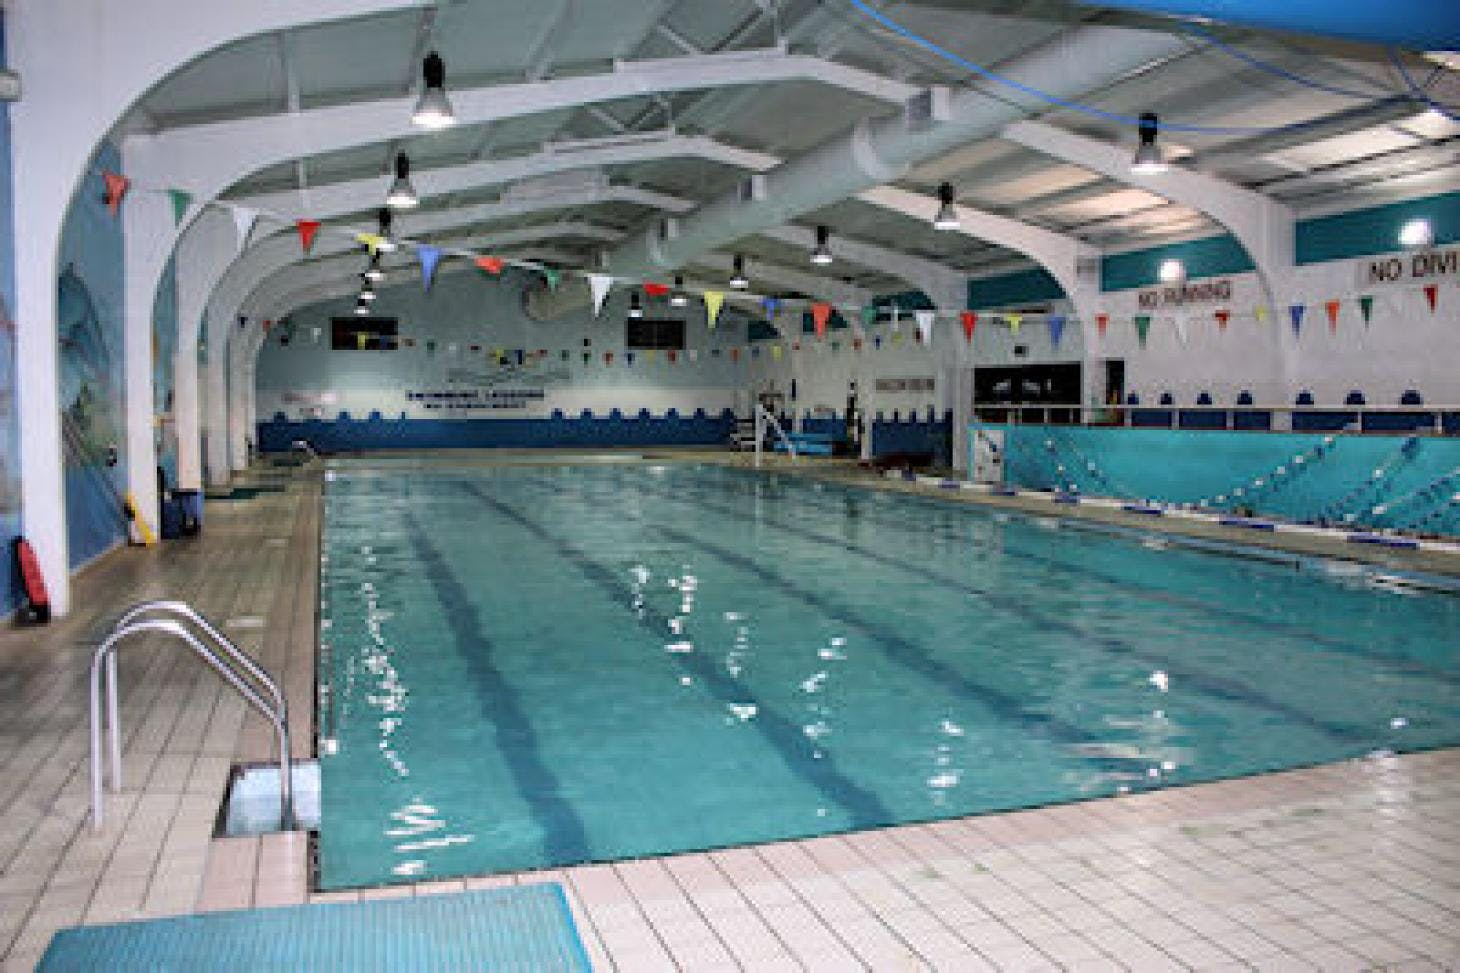 dlr Monkstown Indoor swimming pool